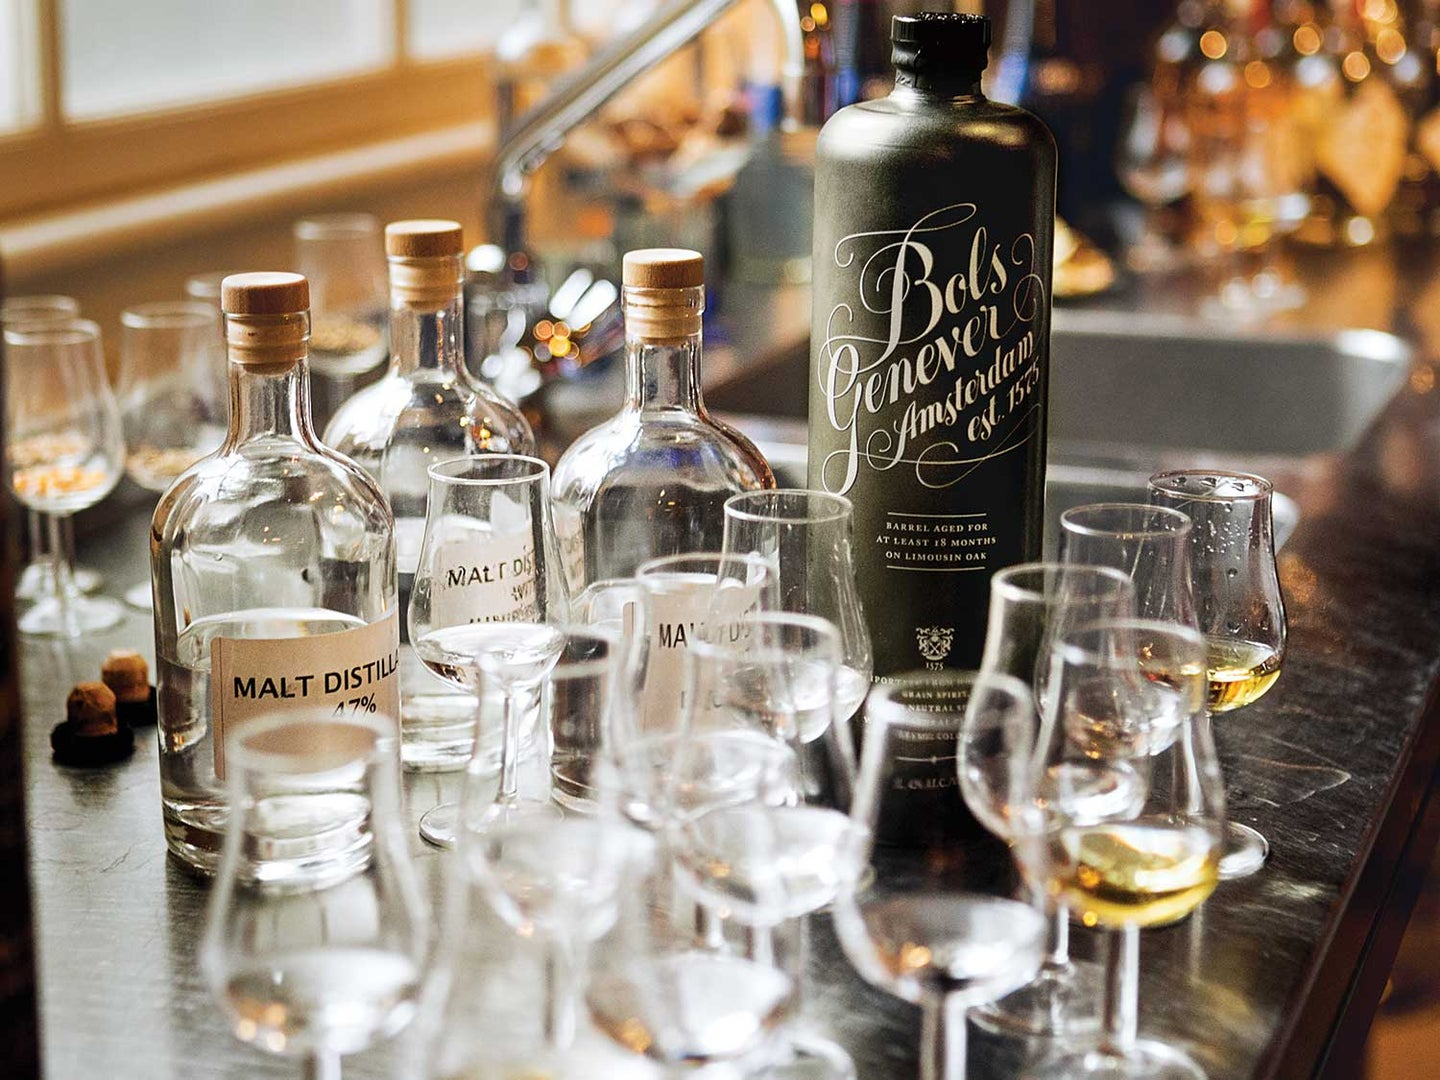 A bottle of Bols genever sits amid base spirits at the 355-year-old Amsterdam distillery.